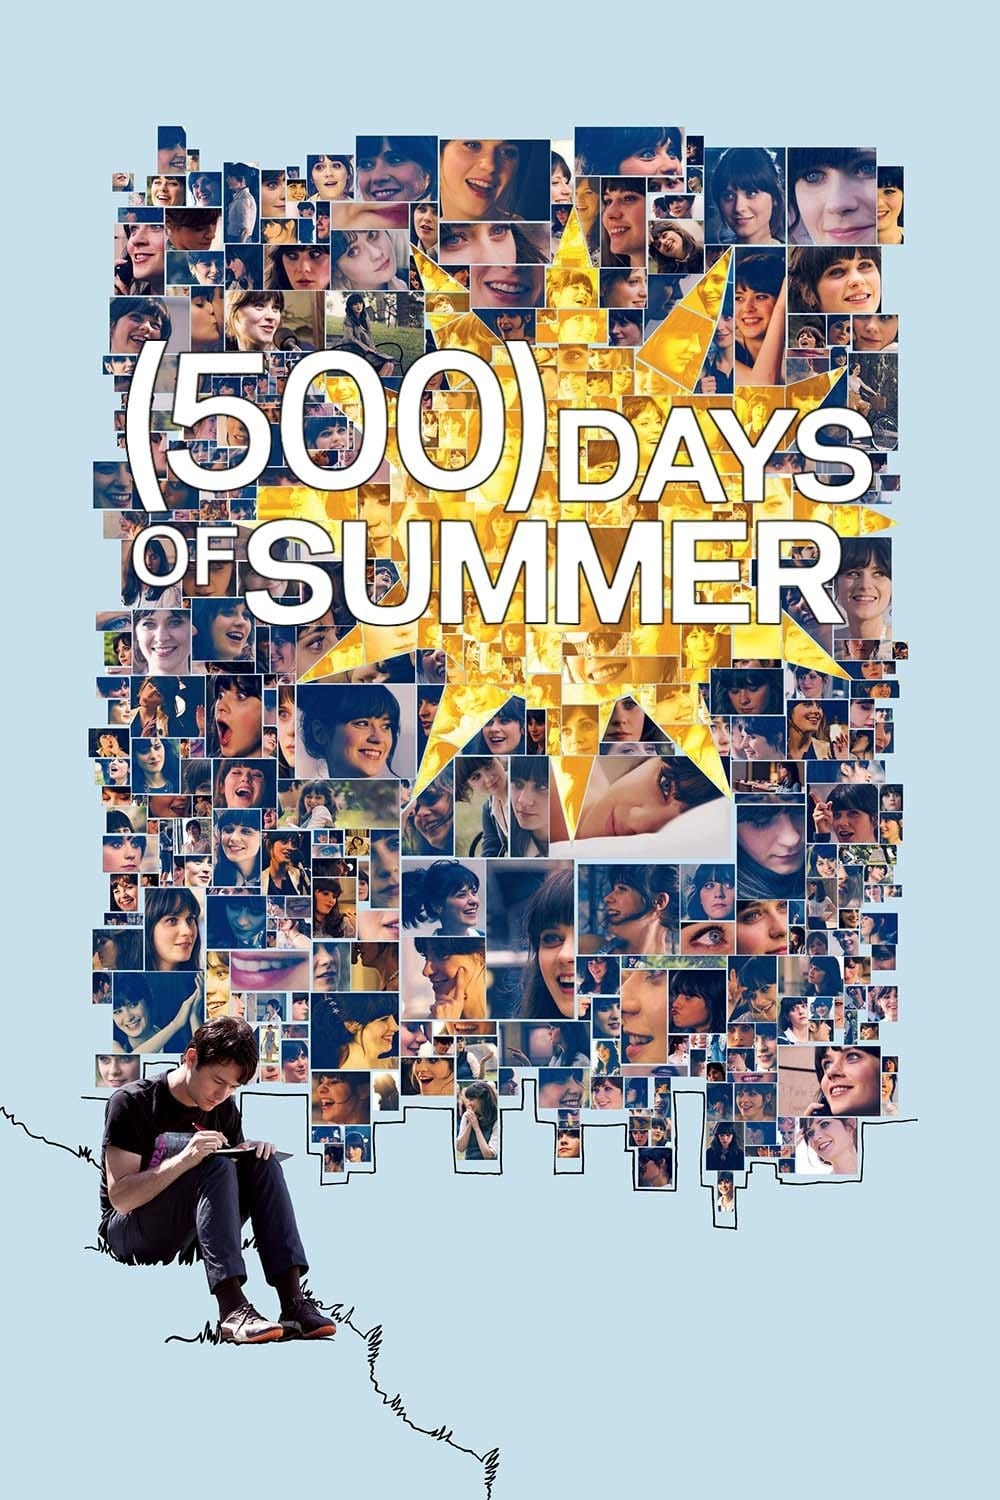 500 days of summer review This spacey romance let down by sitcom cliches, says peter bradshaw.